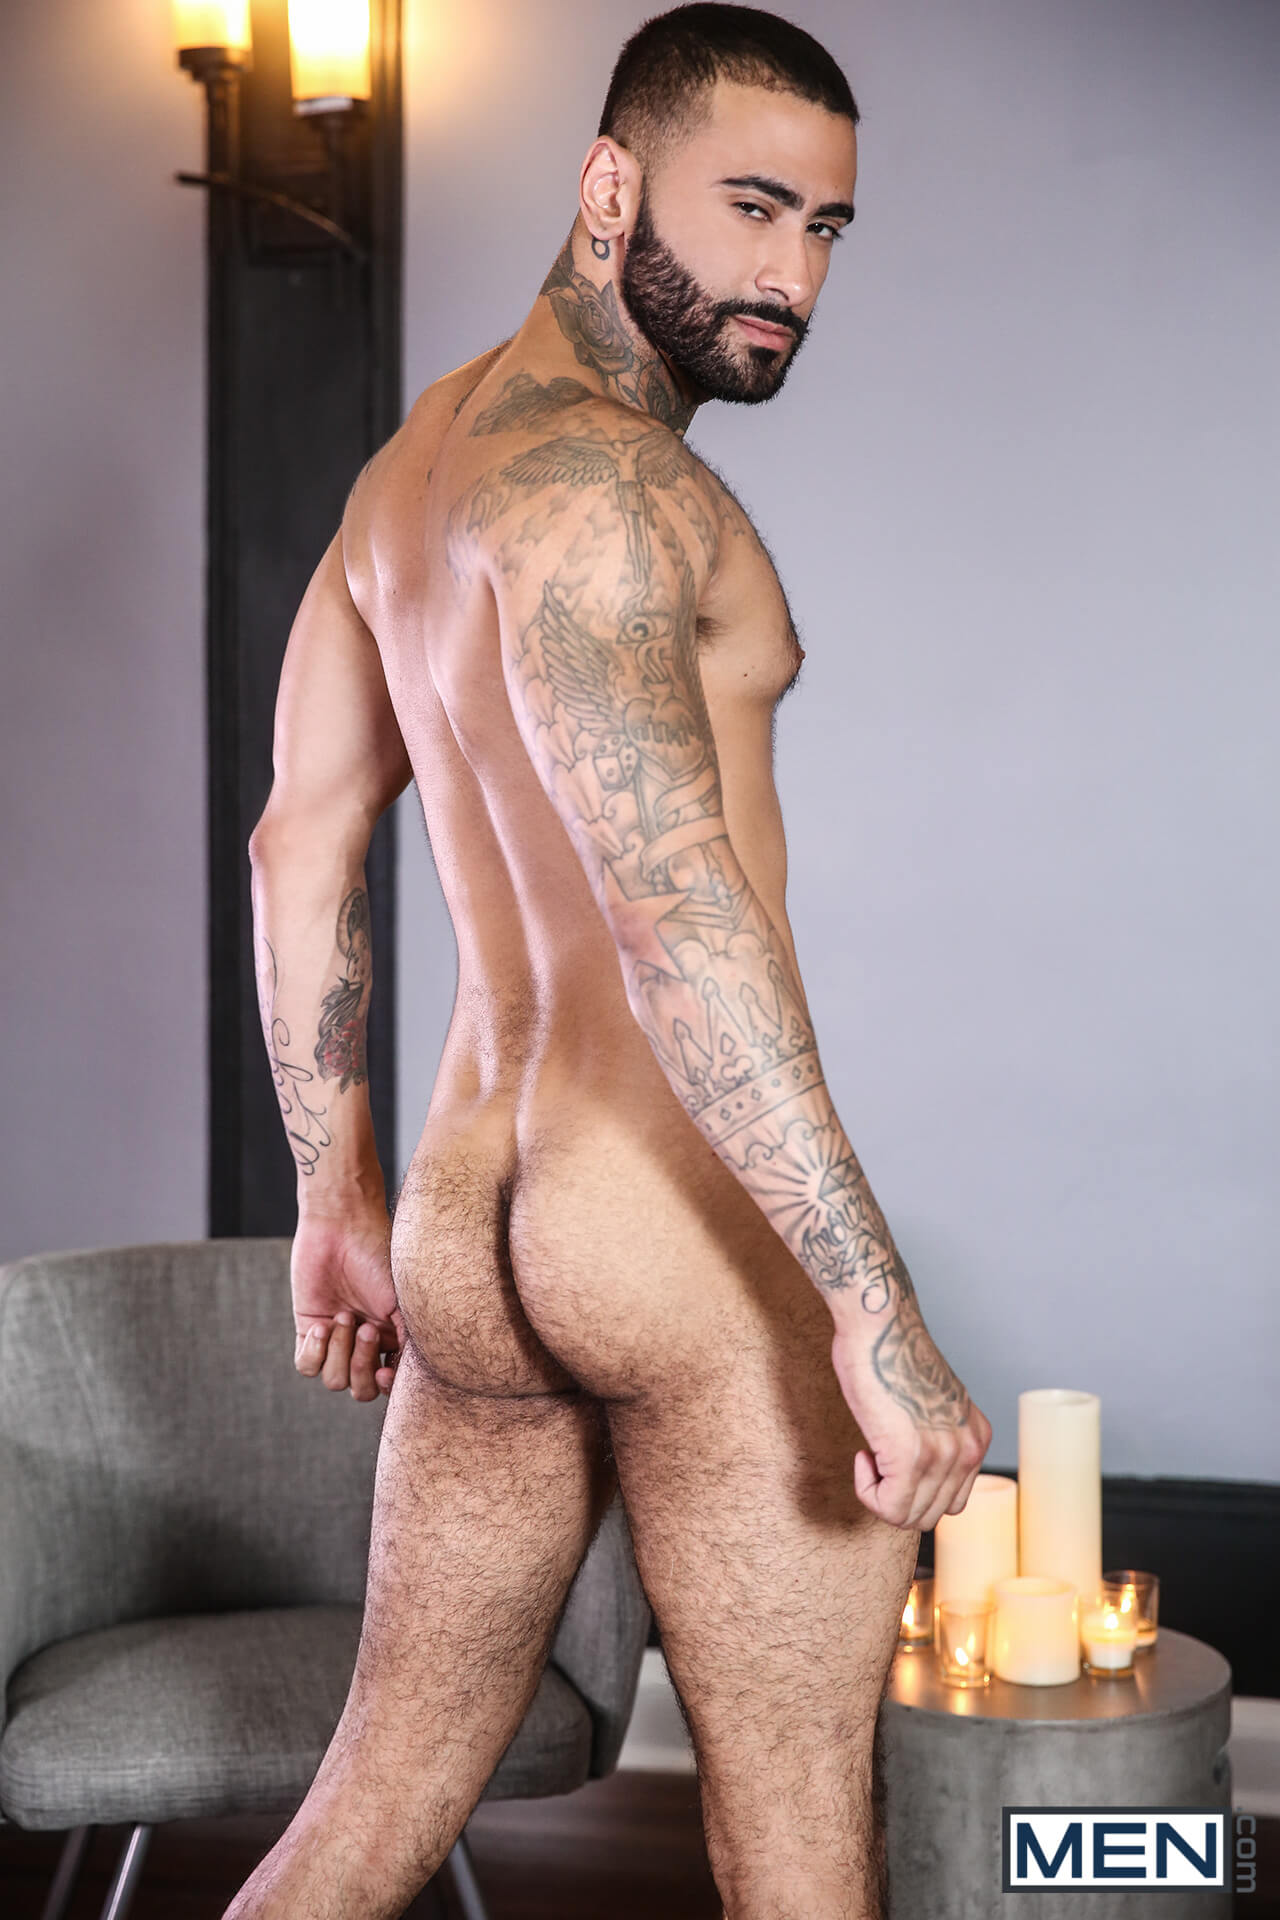 men gods of men te amo diego sans rikk york gay porn blog image 9